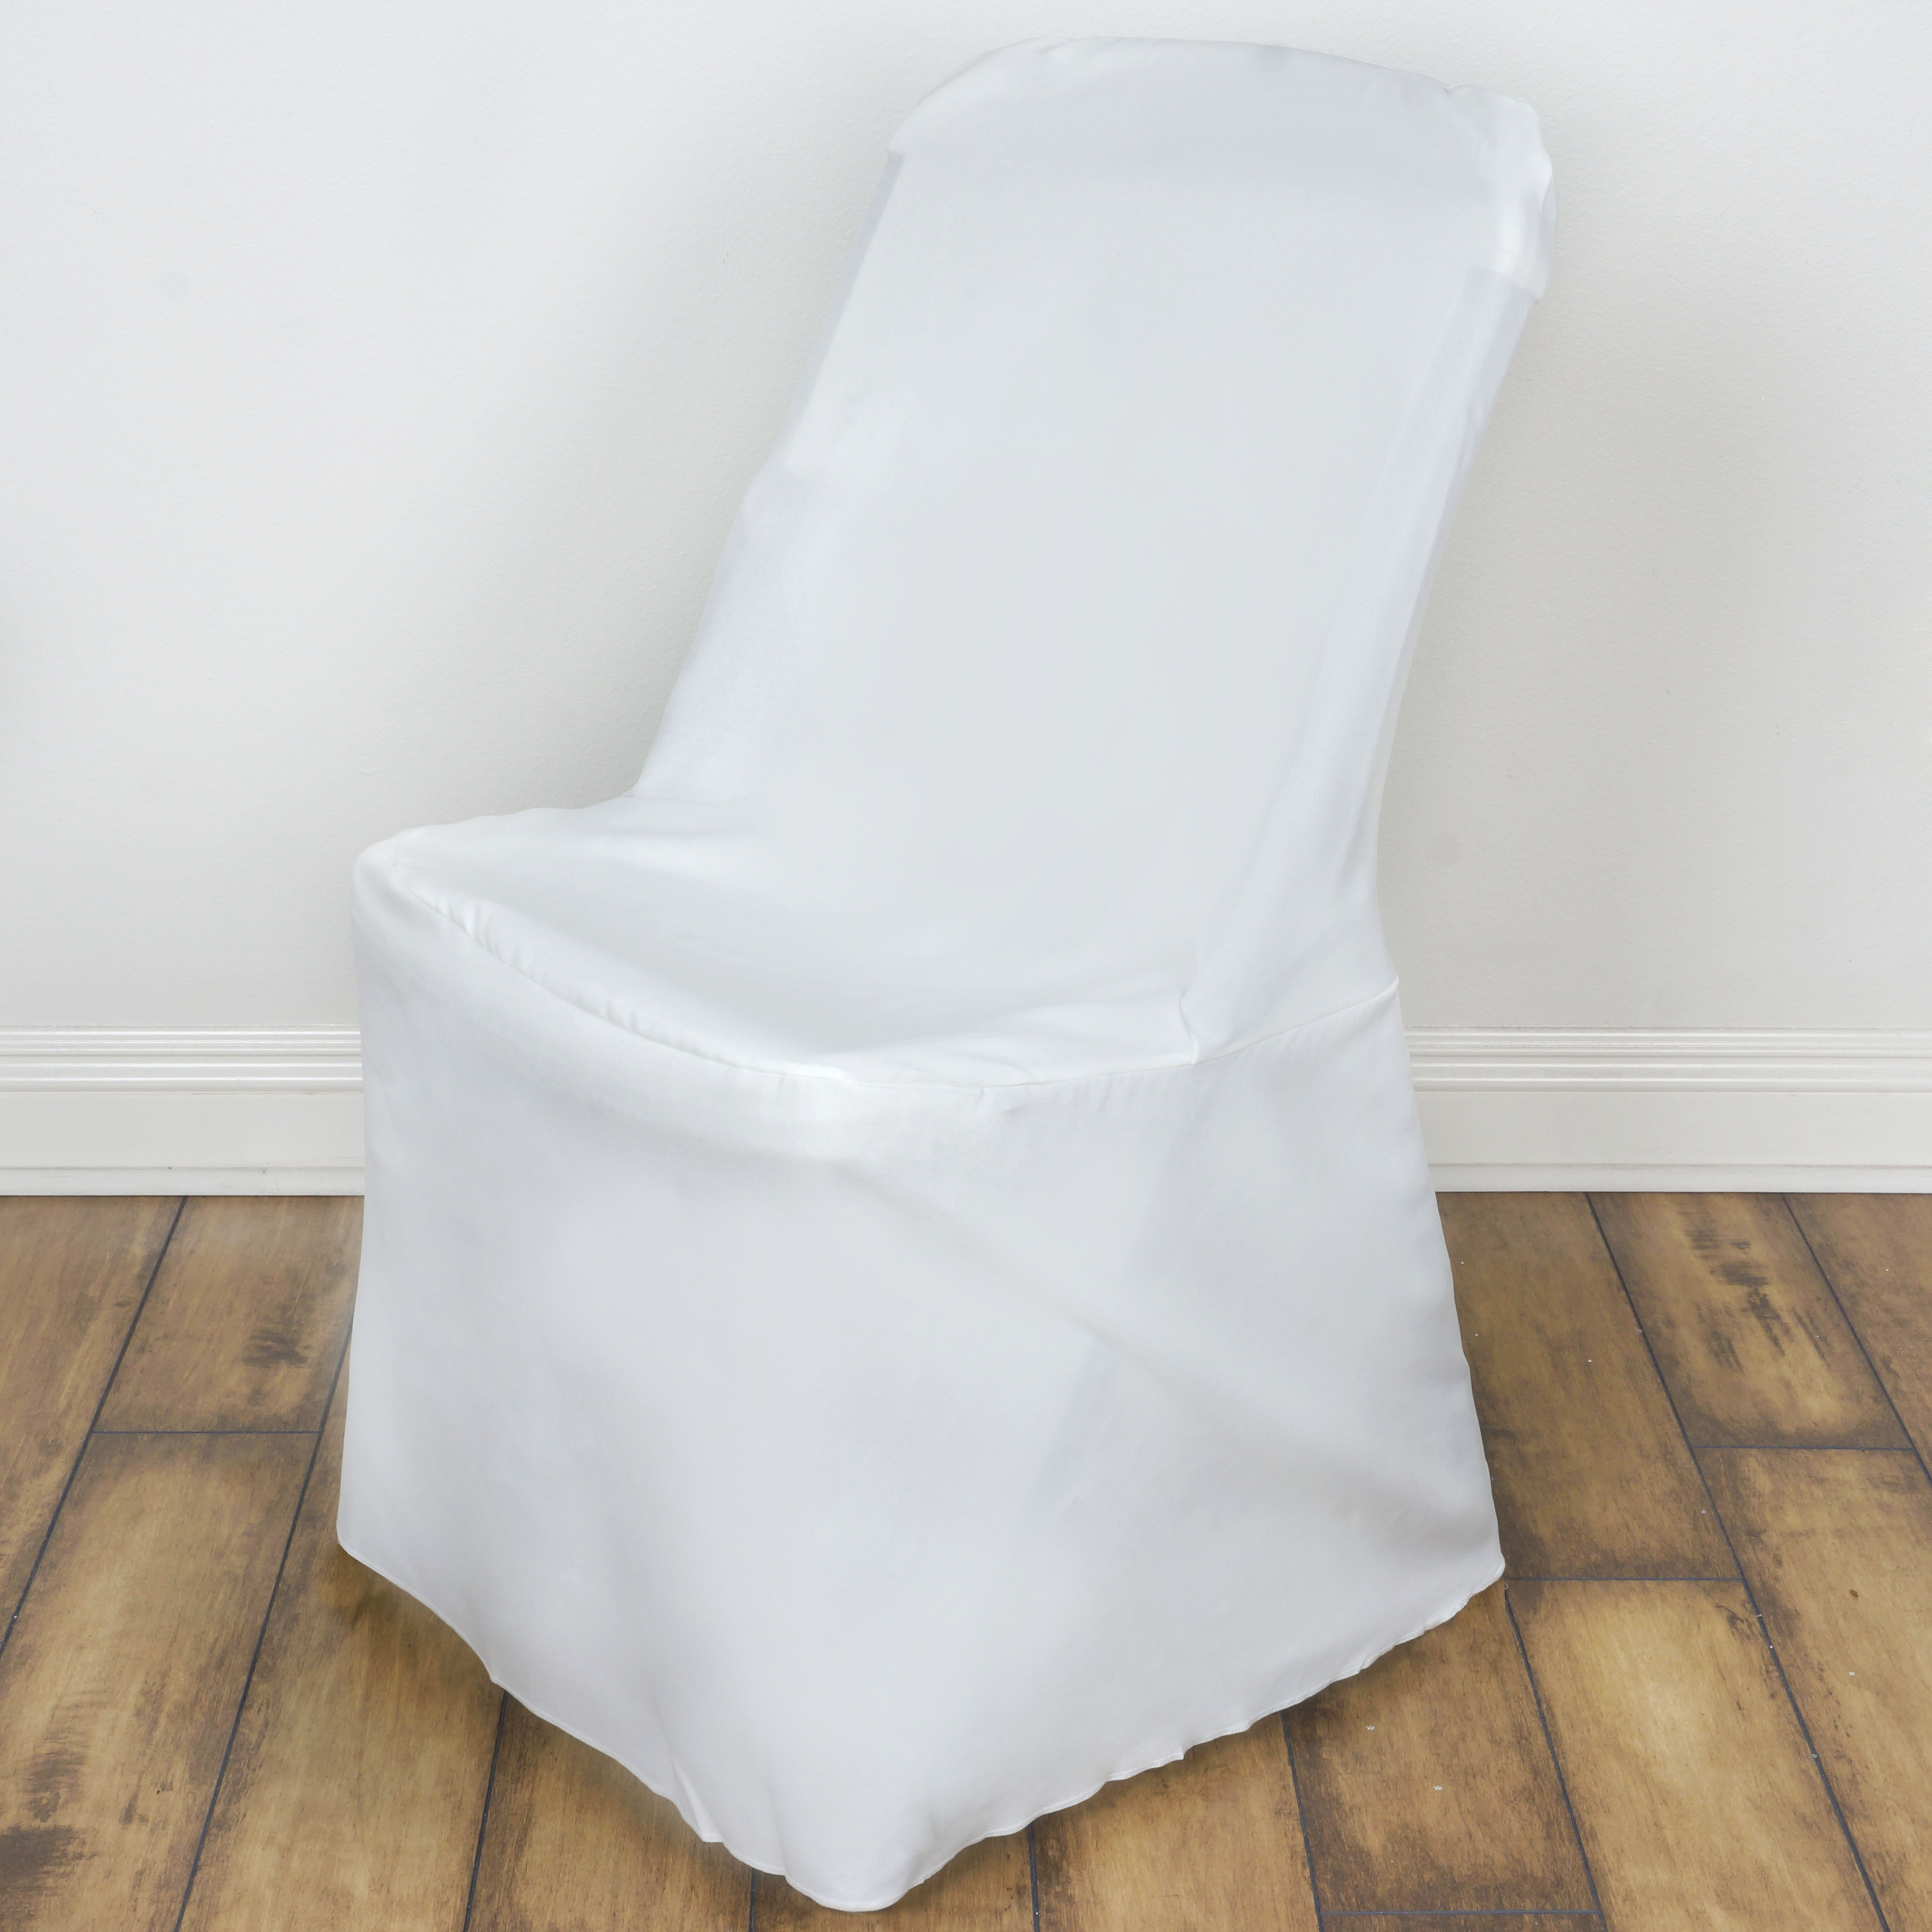 6 Pcs Lifetime Folding Chair Covers Slipcovers Polyester